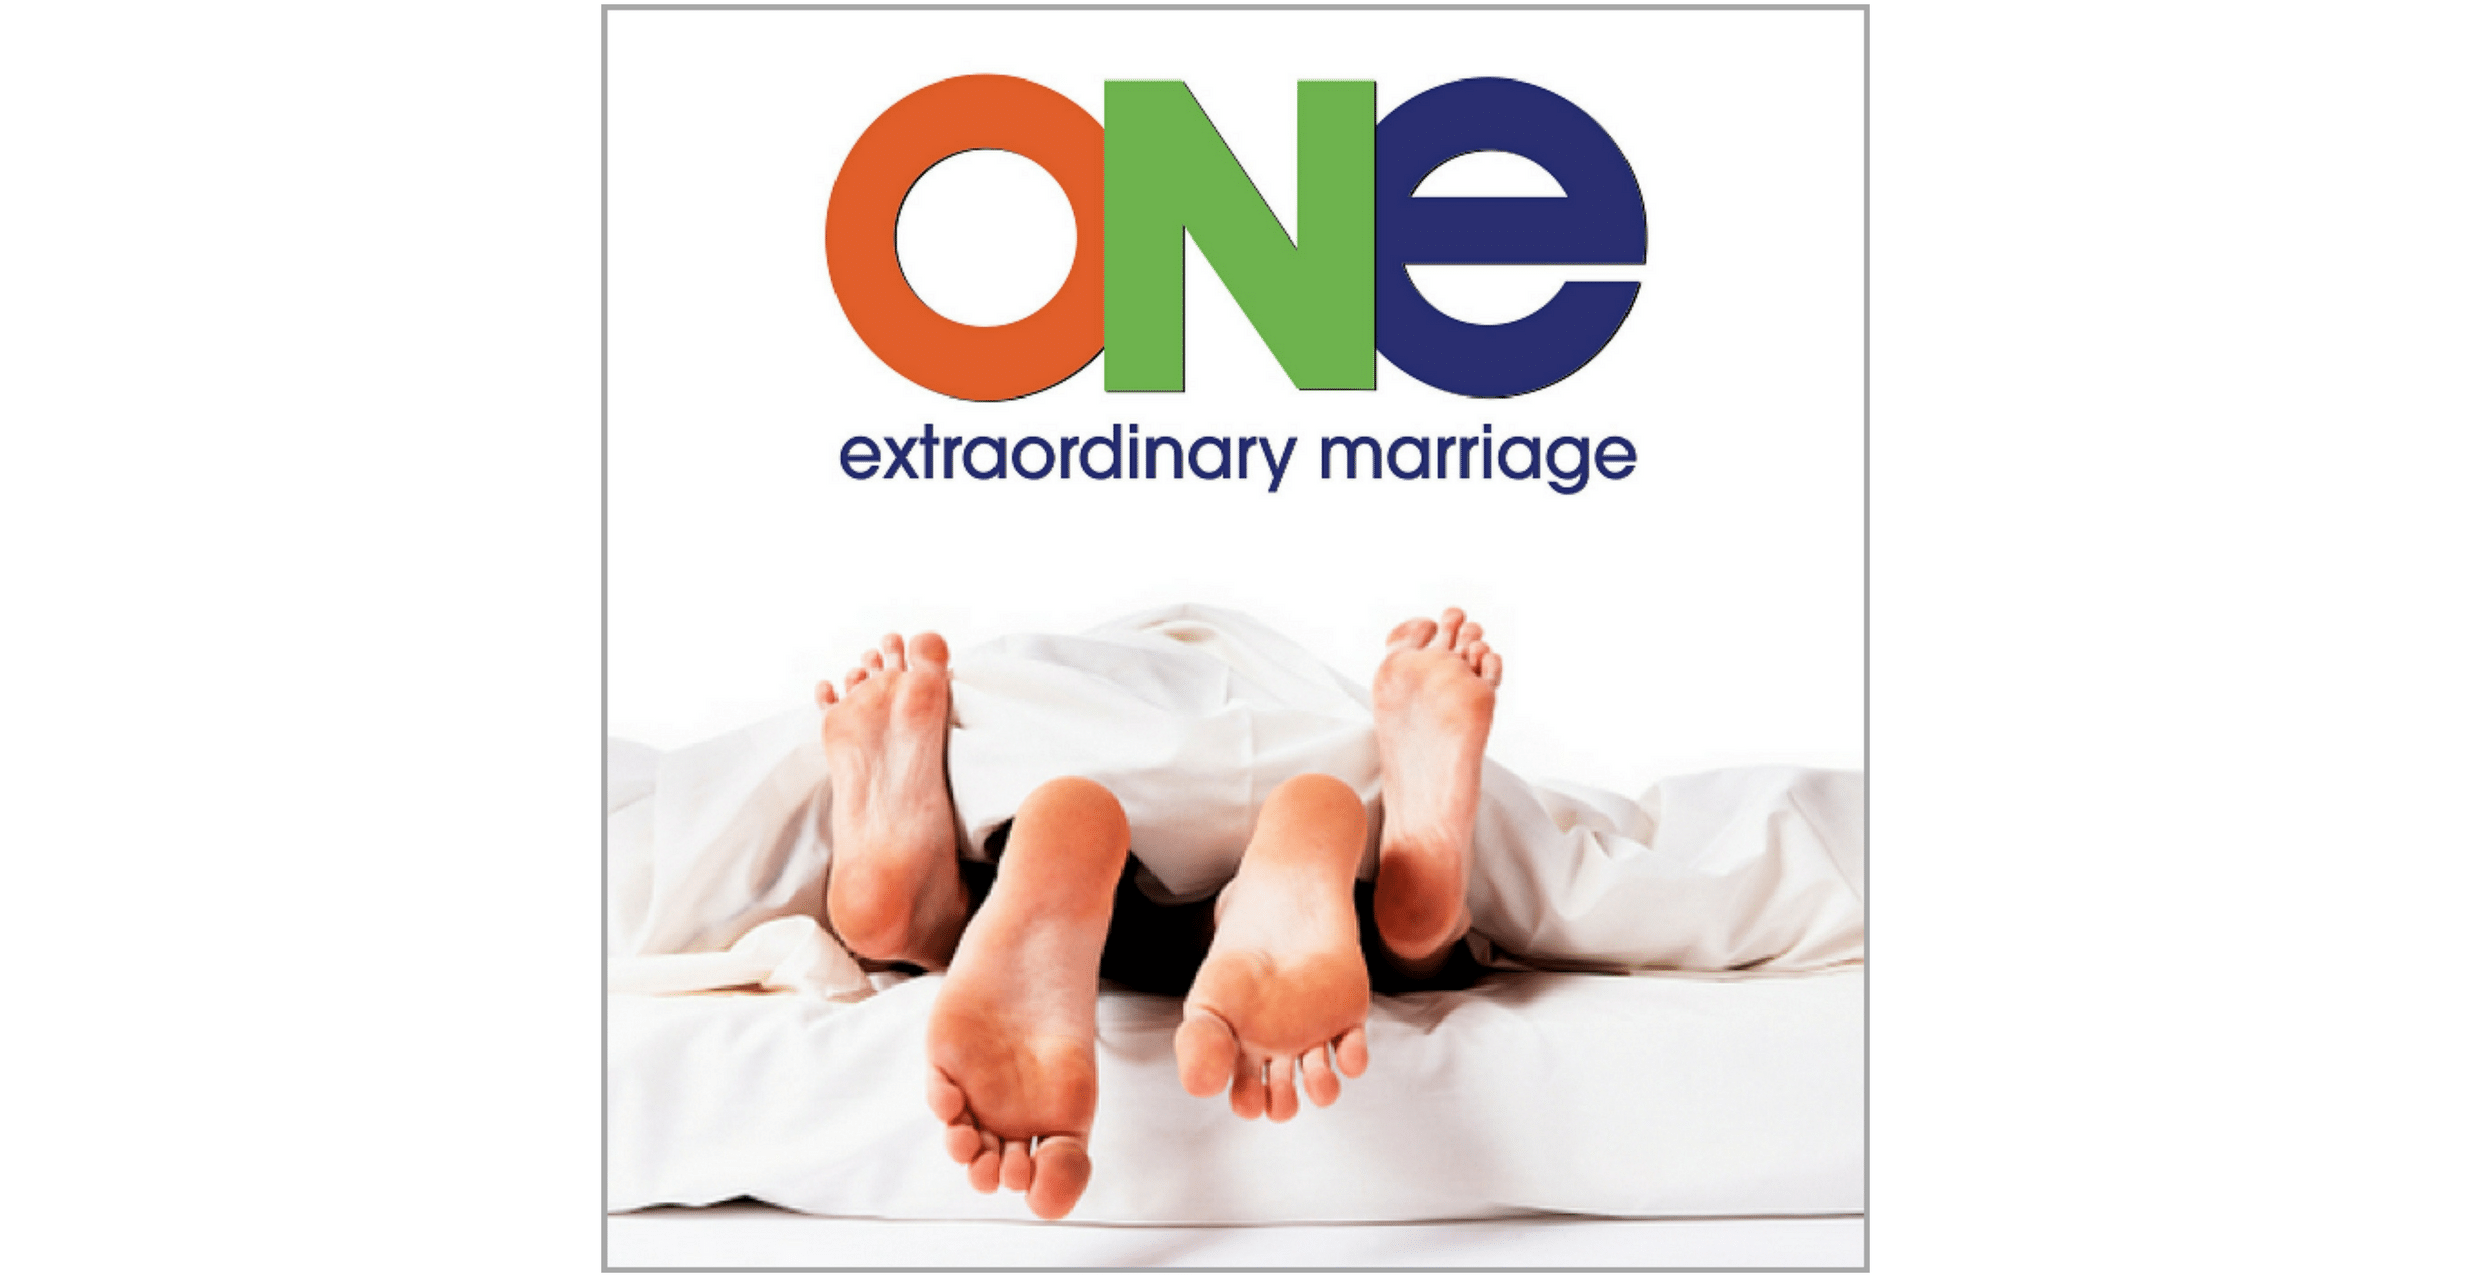 424: ANATOMY OF AN ERECTION - ONE Extraordinary Marriage